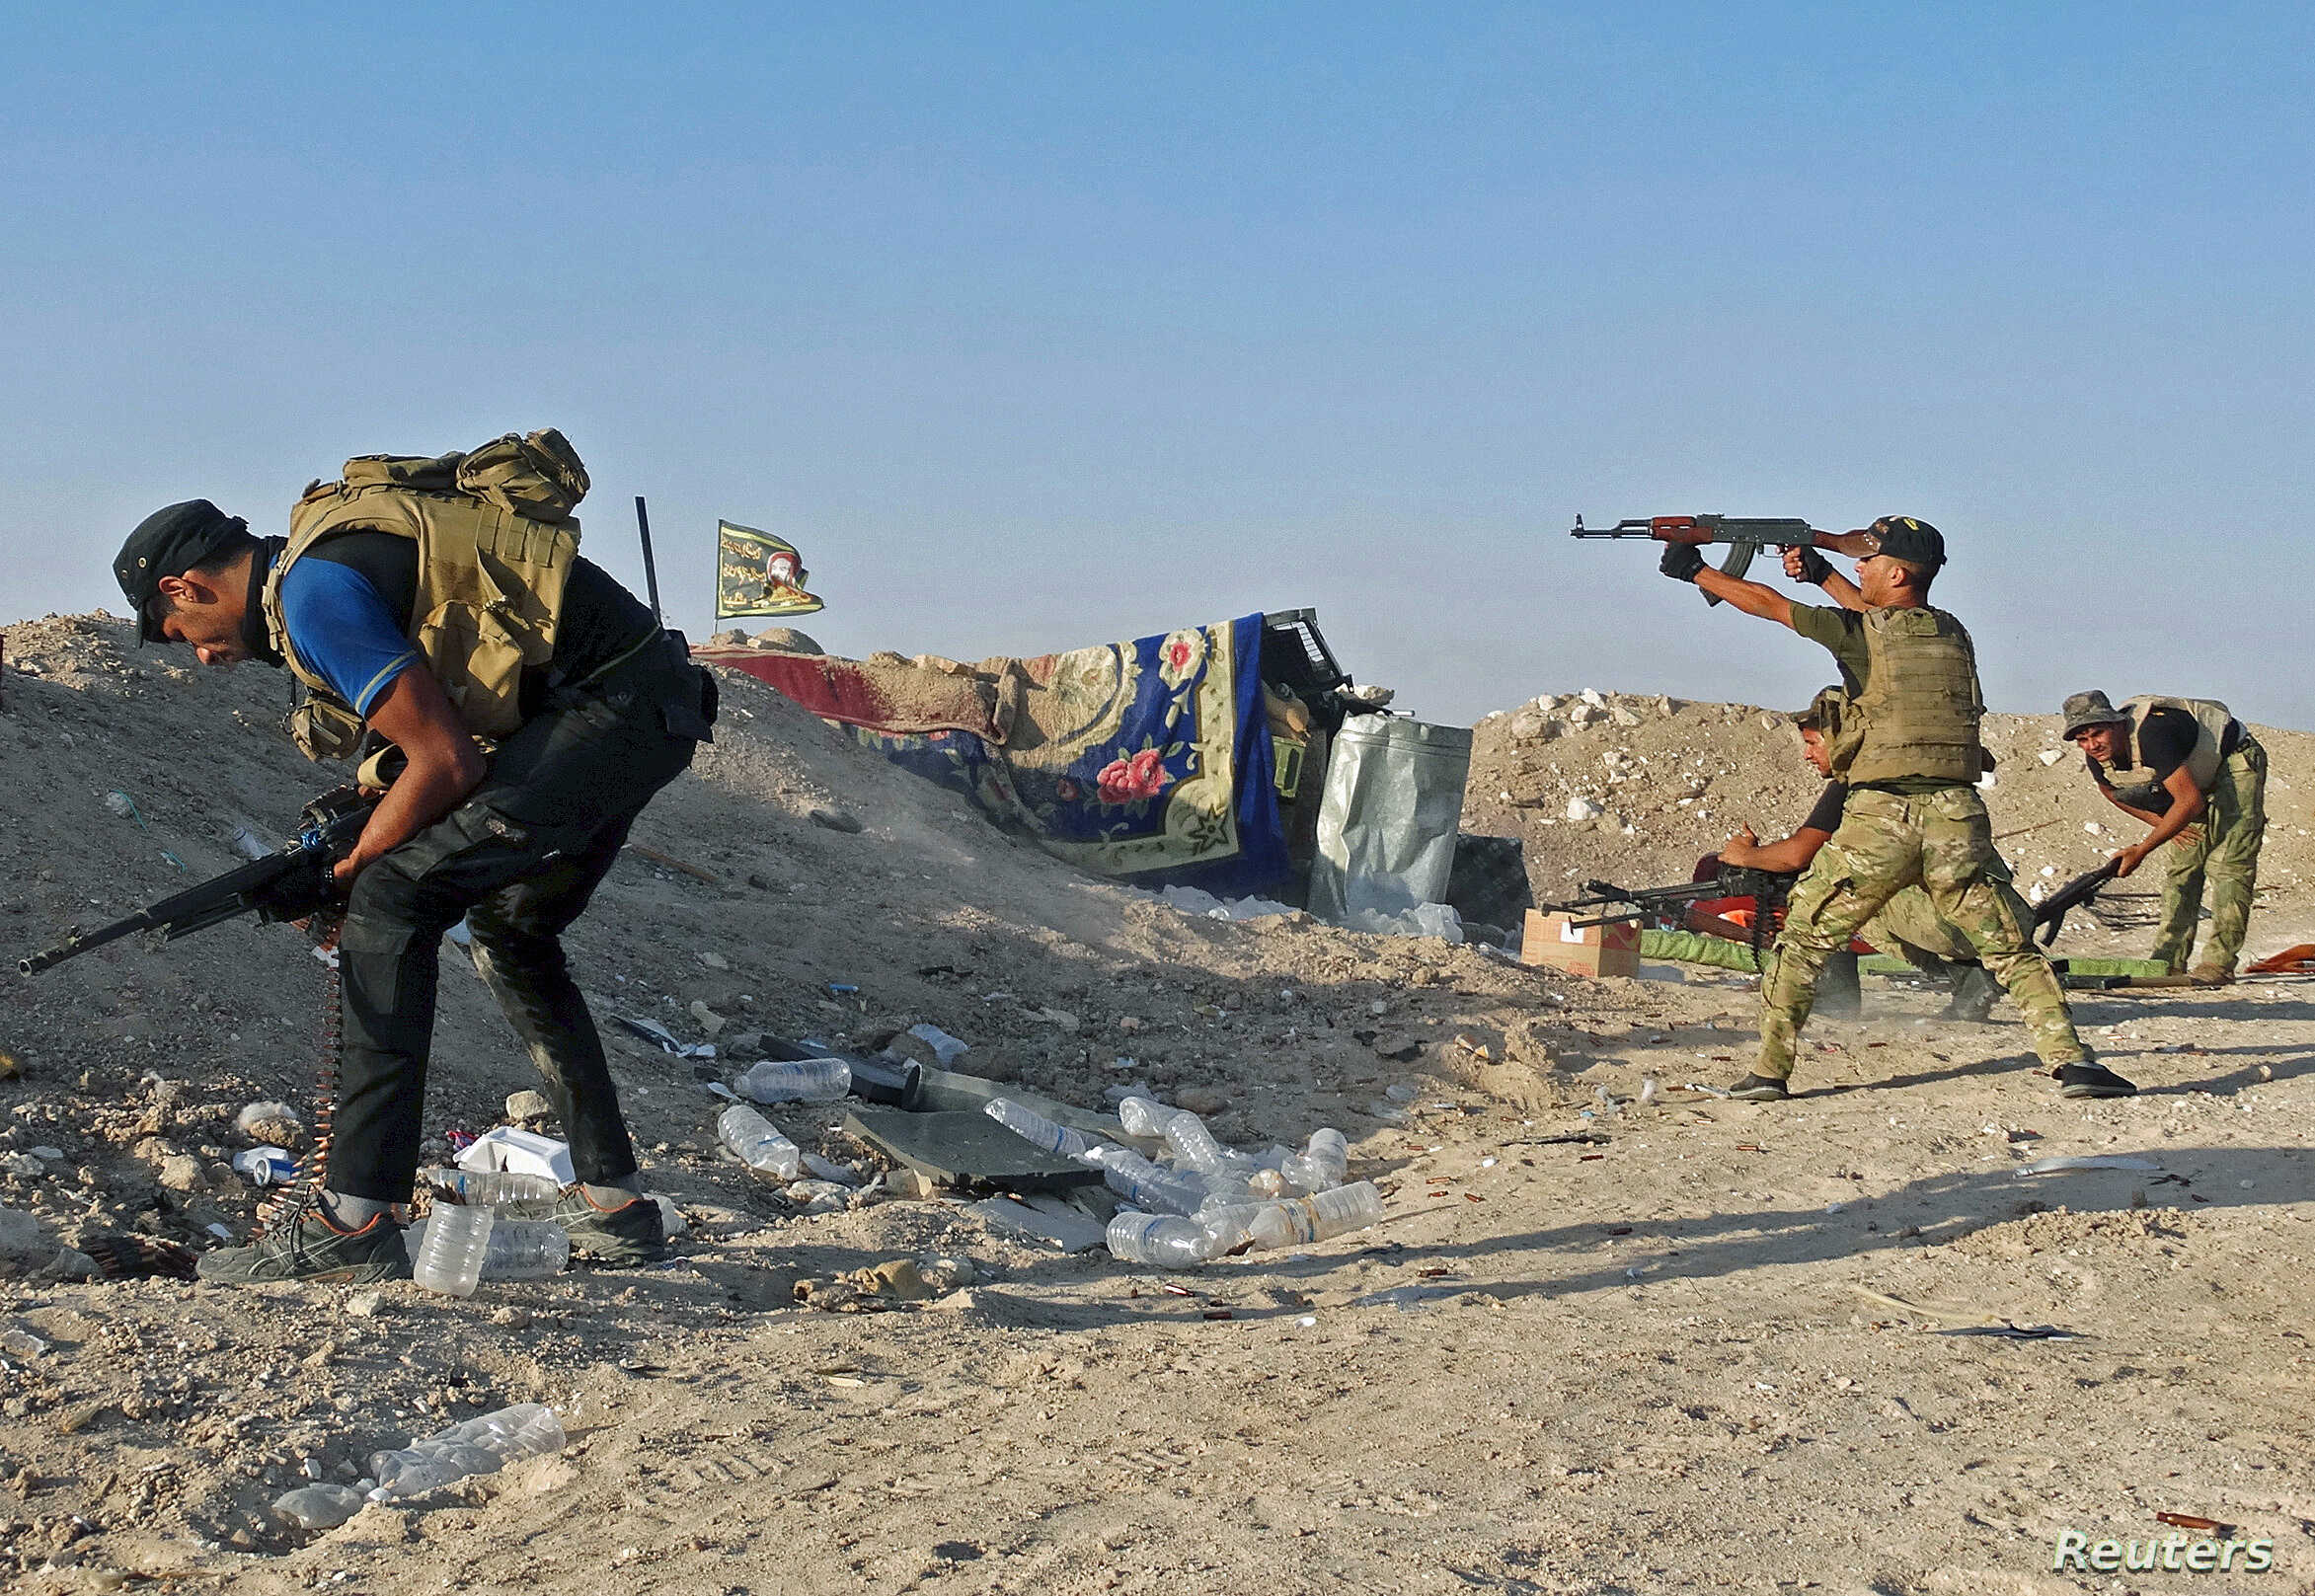 Iraqi security forces fire their weapons during clashes with Islamic State militants on the outskirts of Ramadi, June 15, 2015.